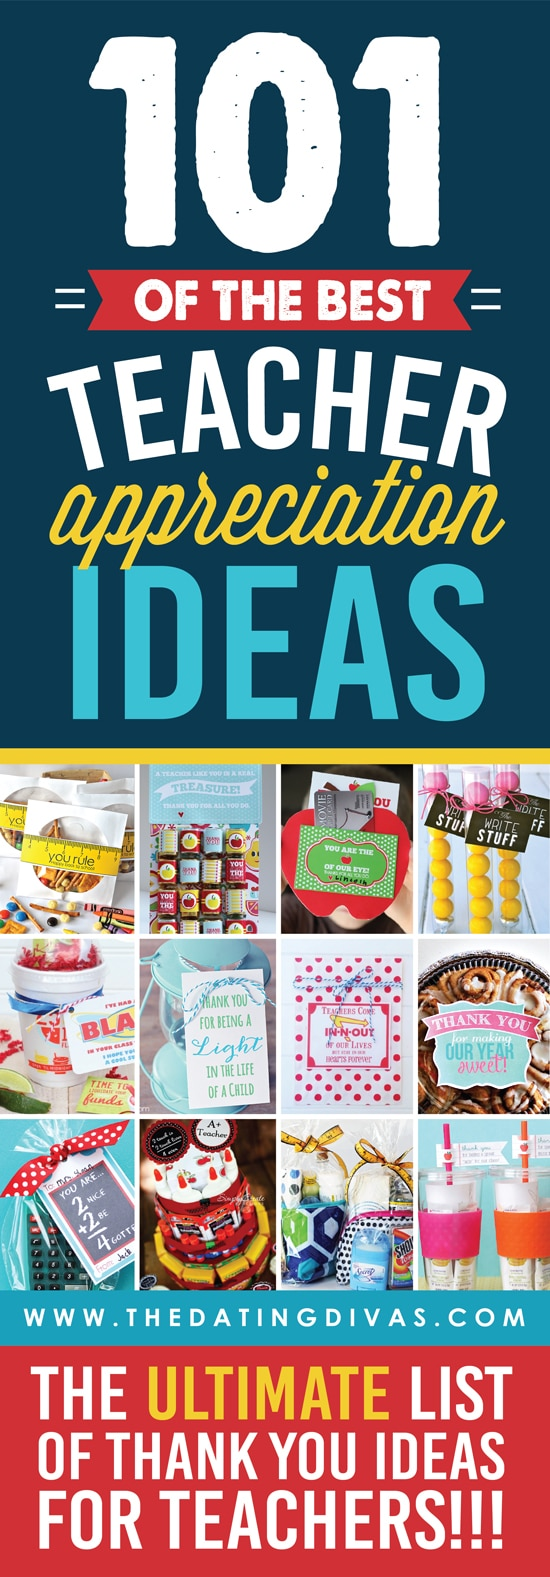 101 teacher appreciation gift ideas